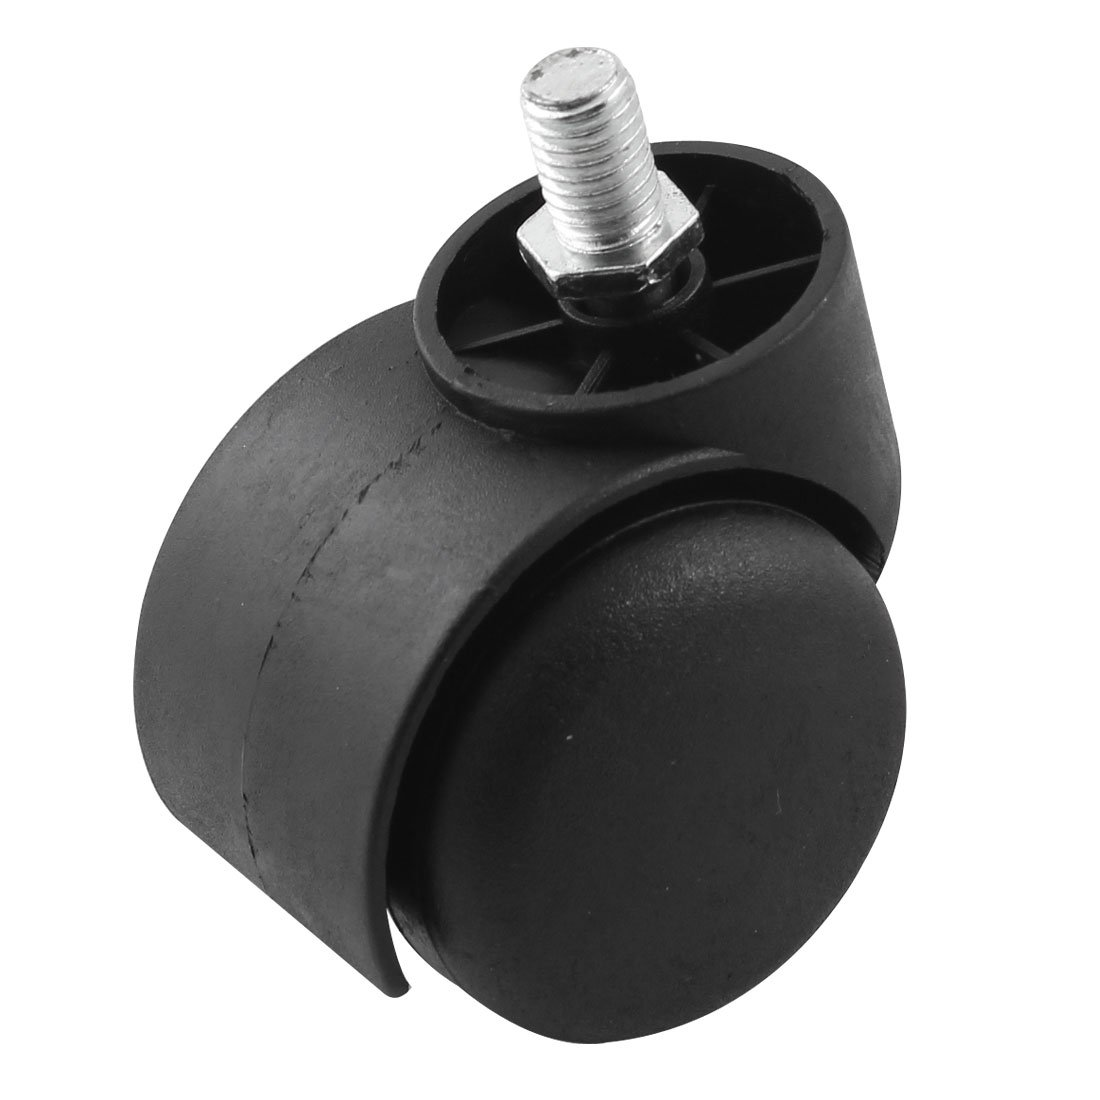 15mm Long Threaded Stem Metal 49mm Dia Chair Caster Wheel Black варочная поверхность beko himg 64223 x